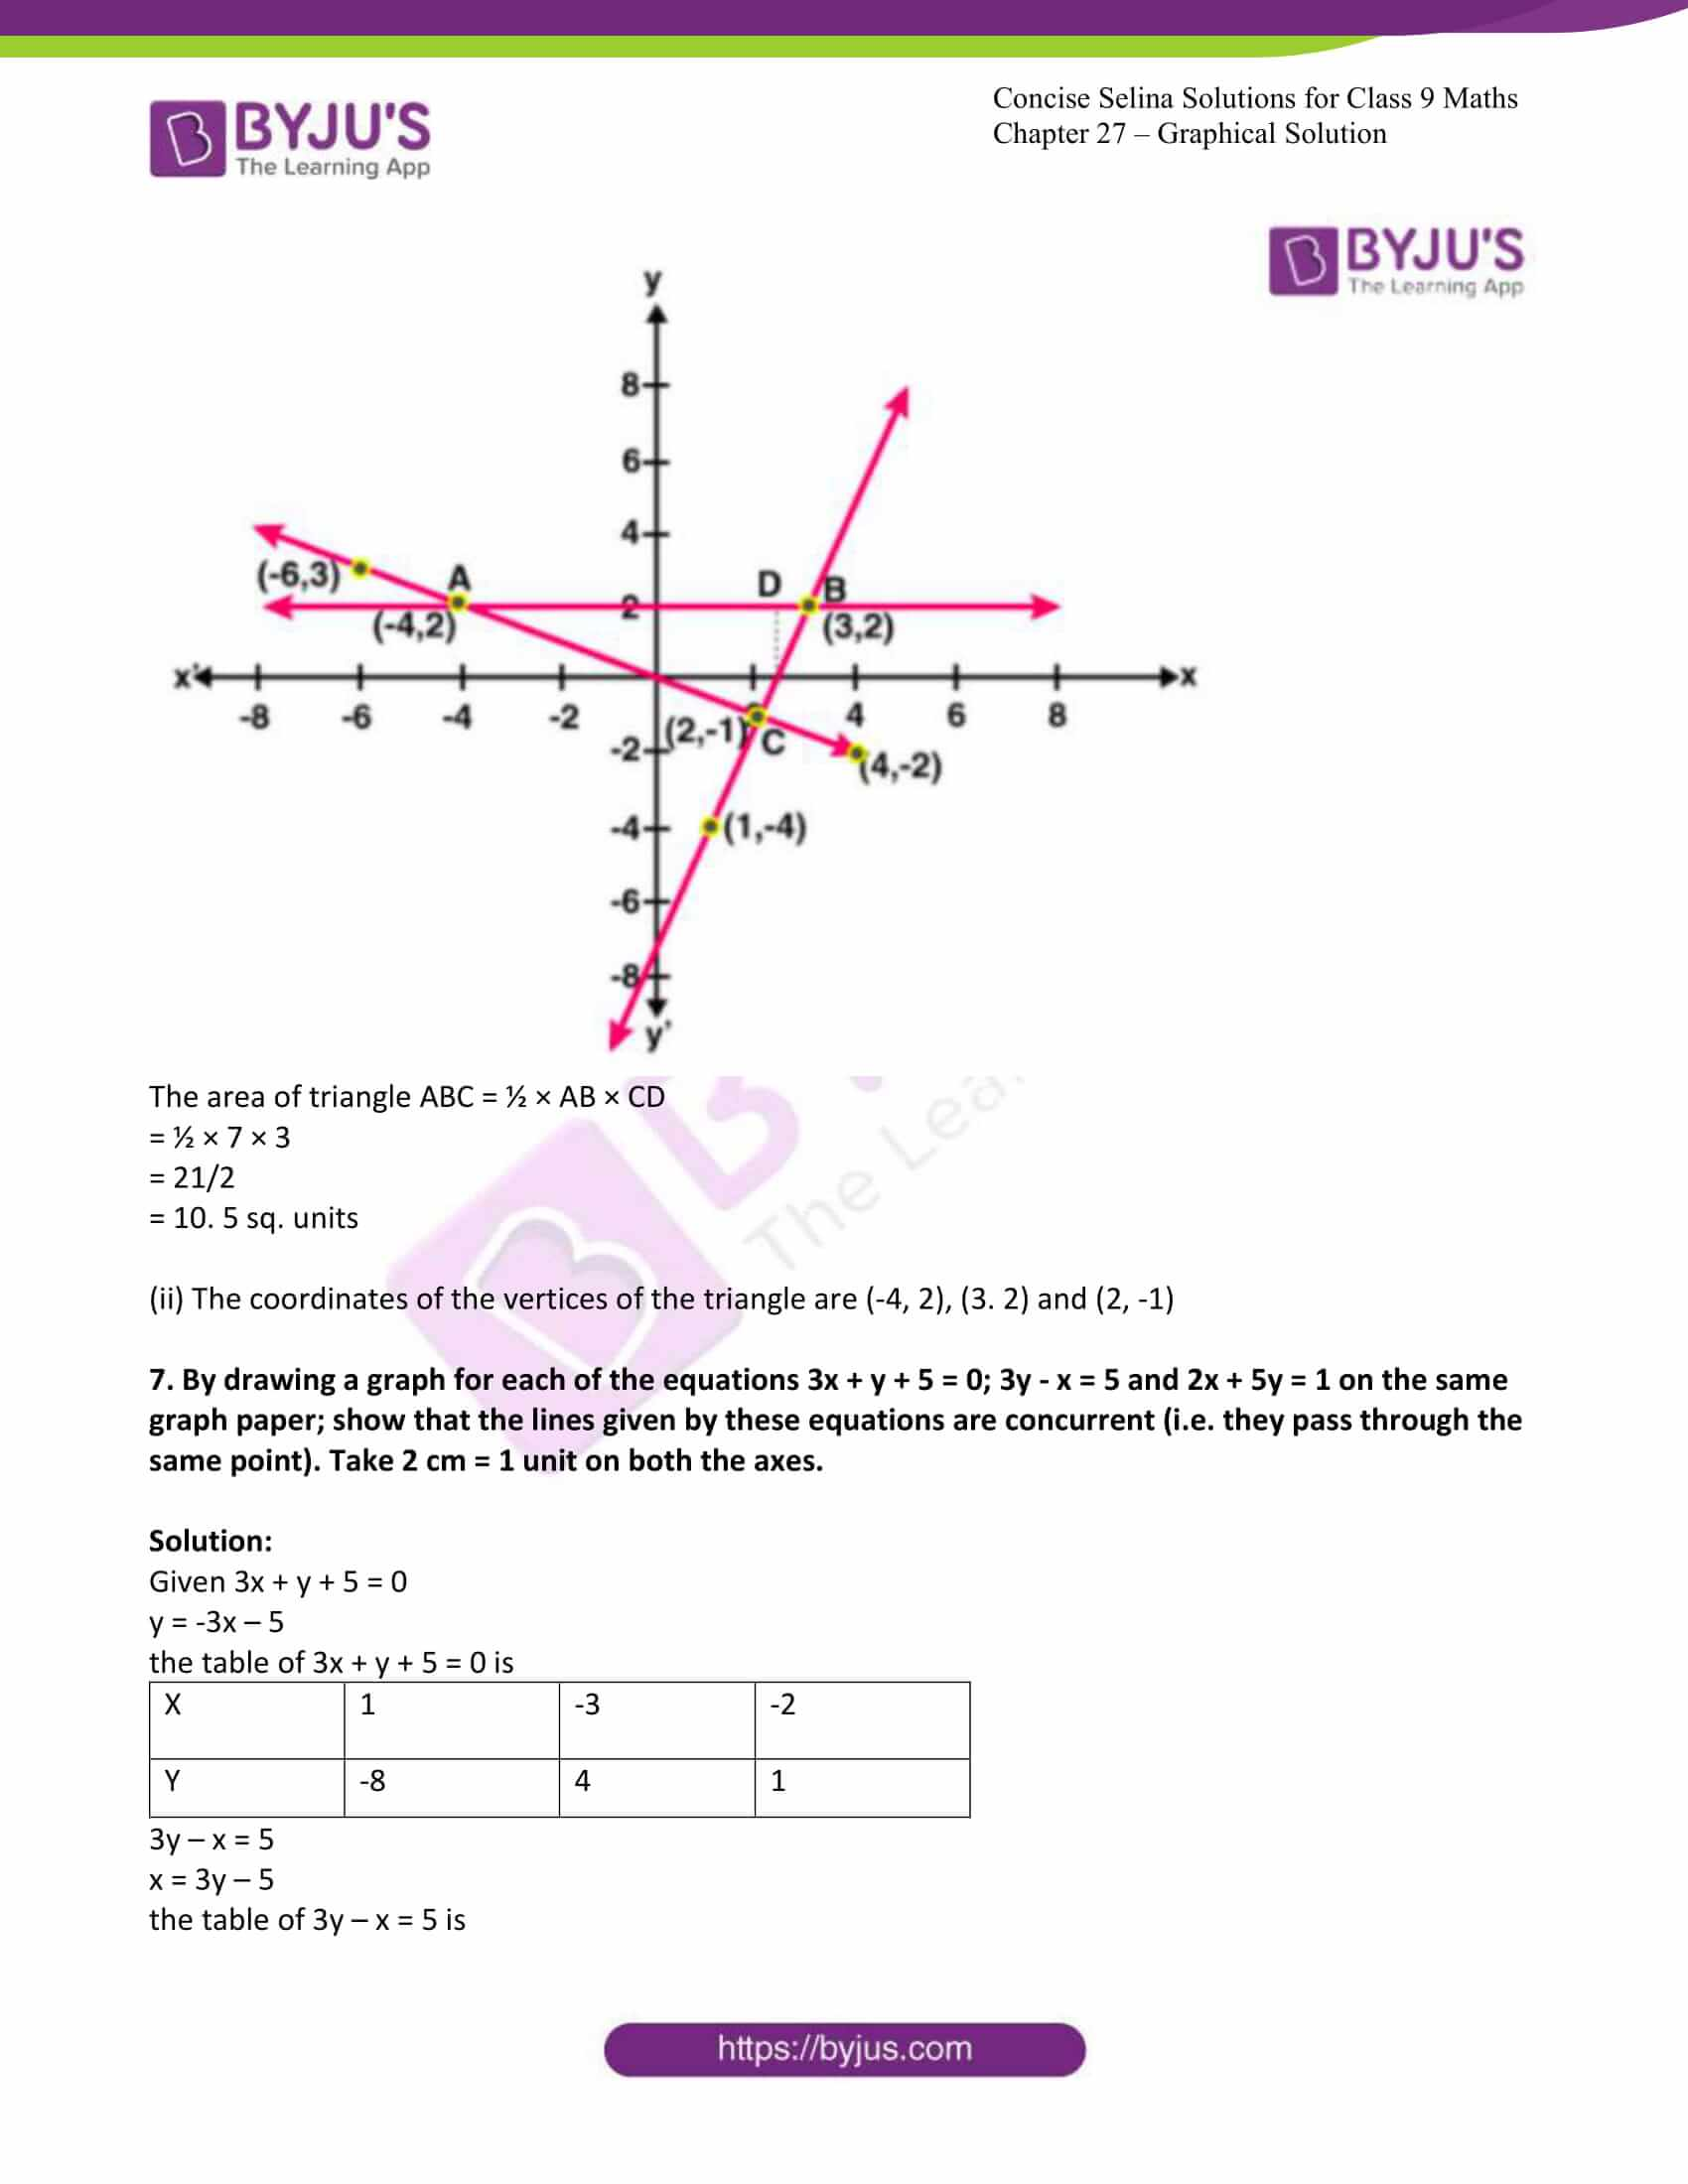 icse class 9 jun8 maths selina solutions chapter 27 graphical solutions 30